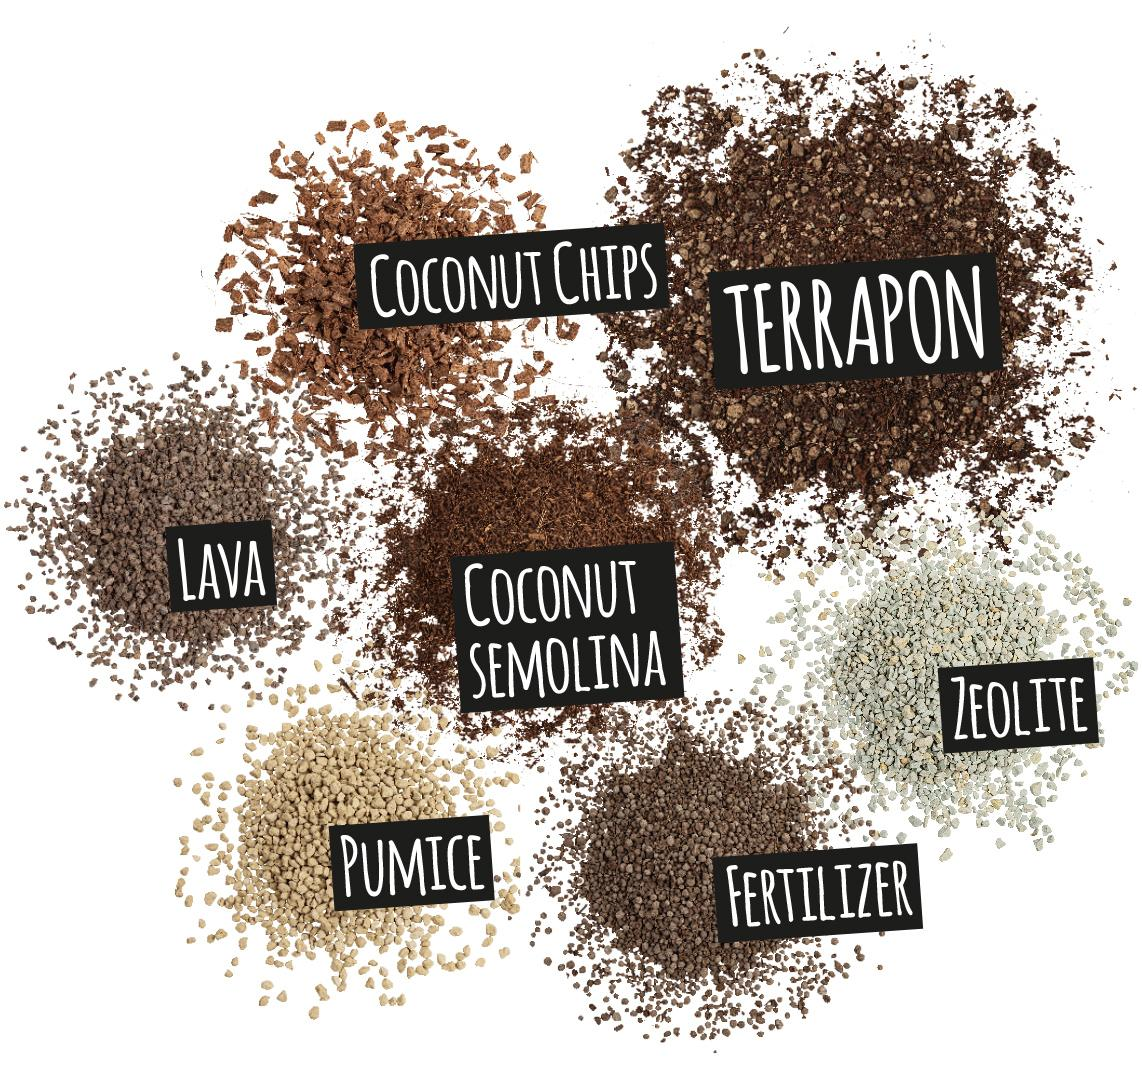 'Components of TERRAPON: coconut chips